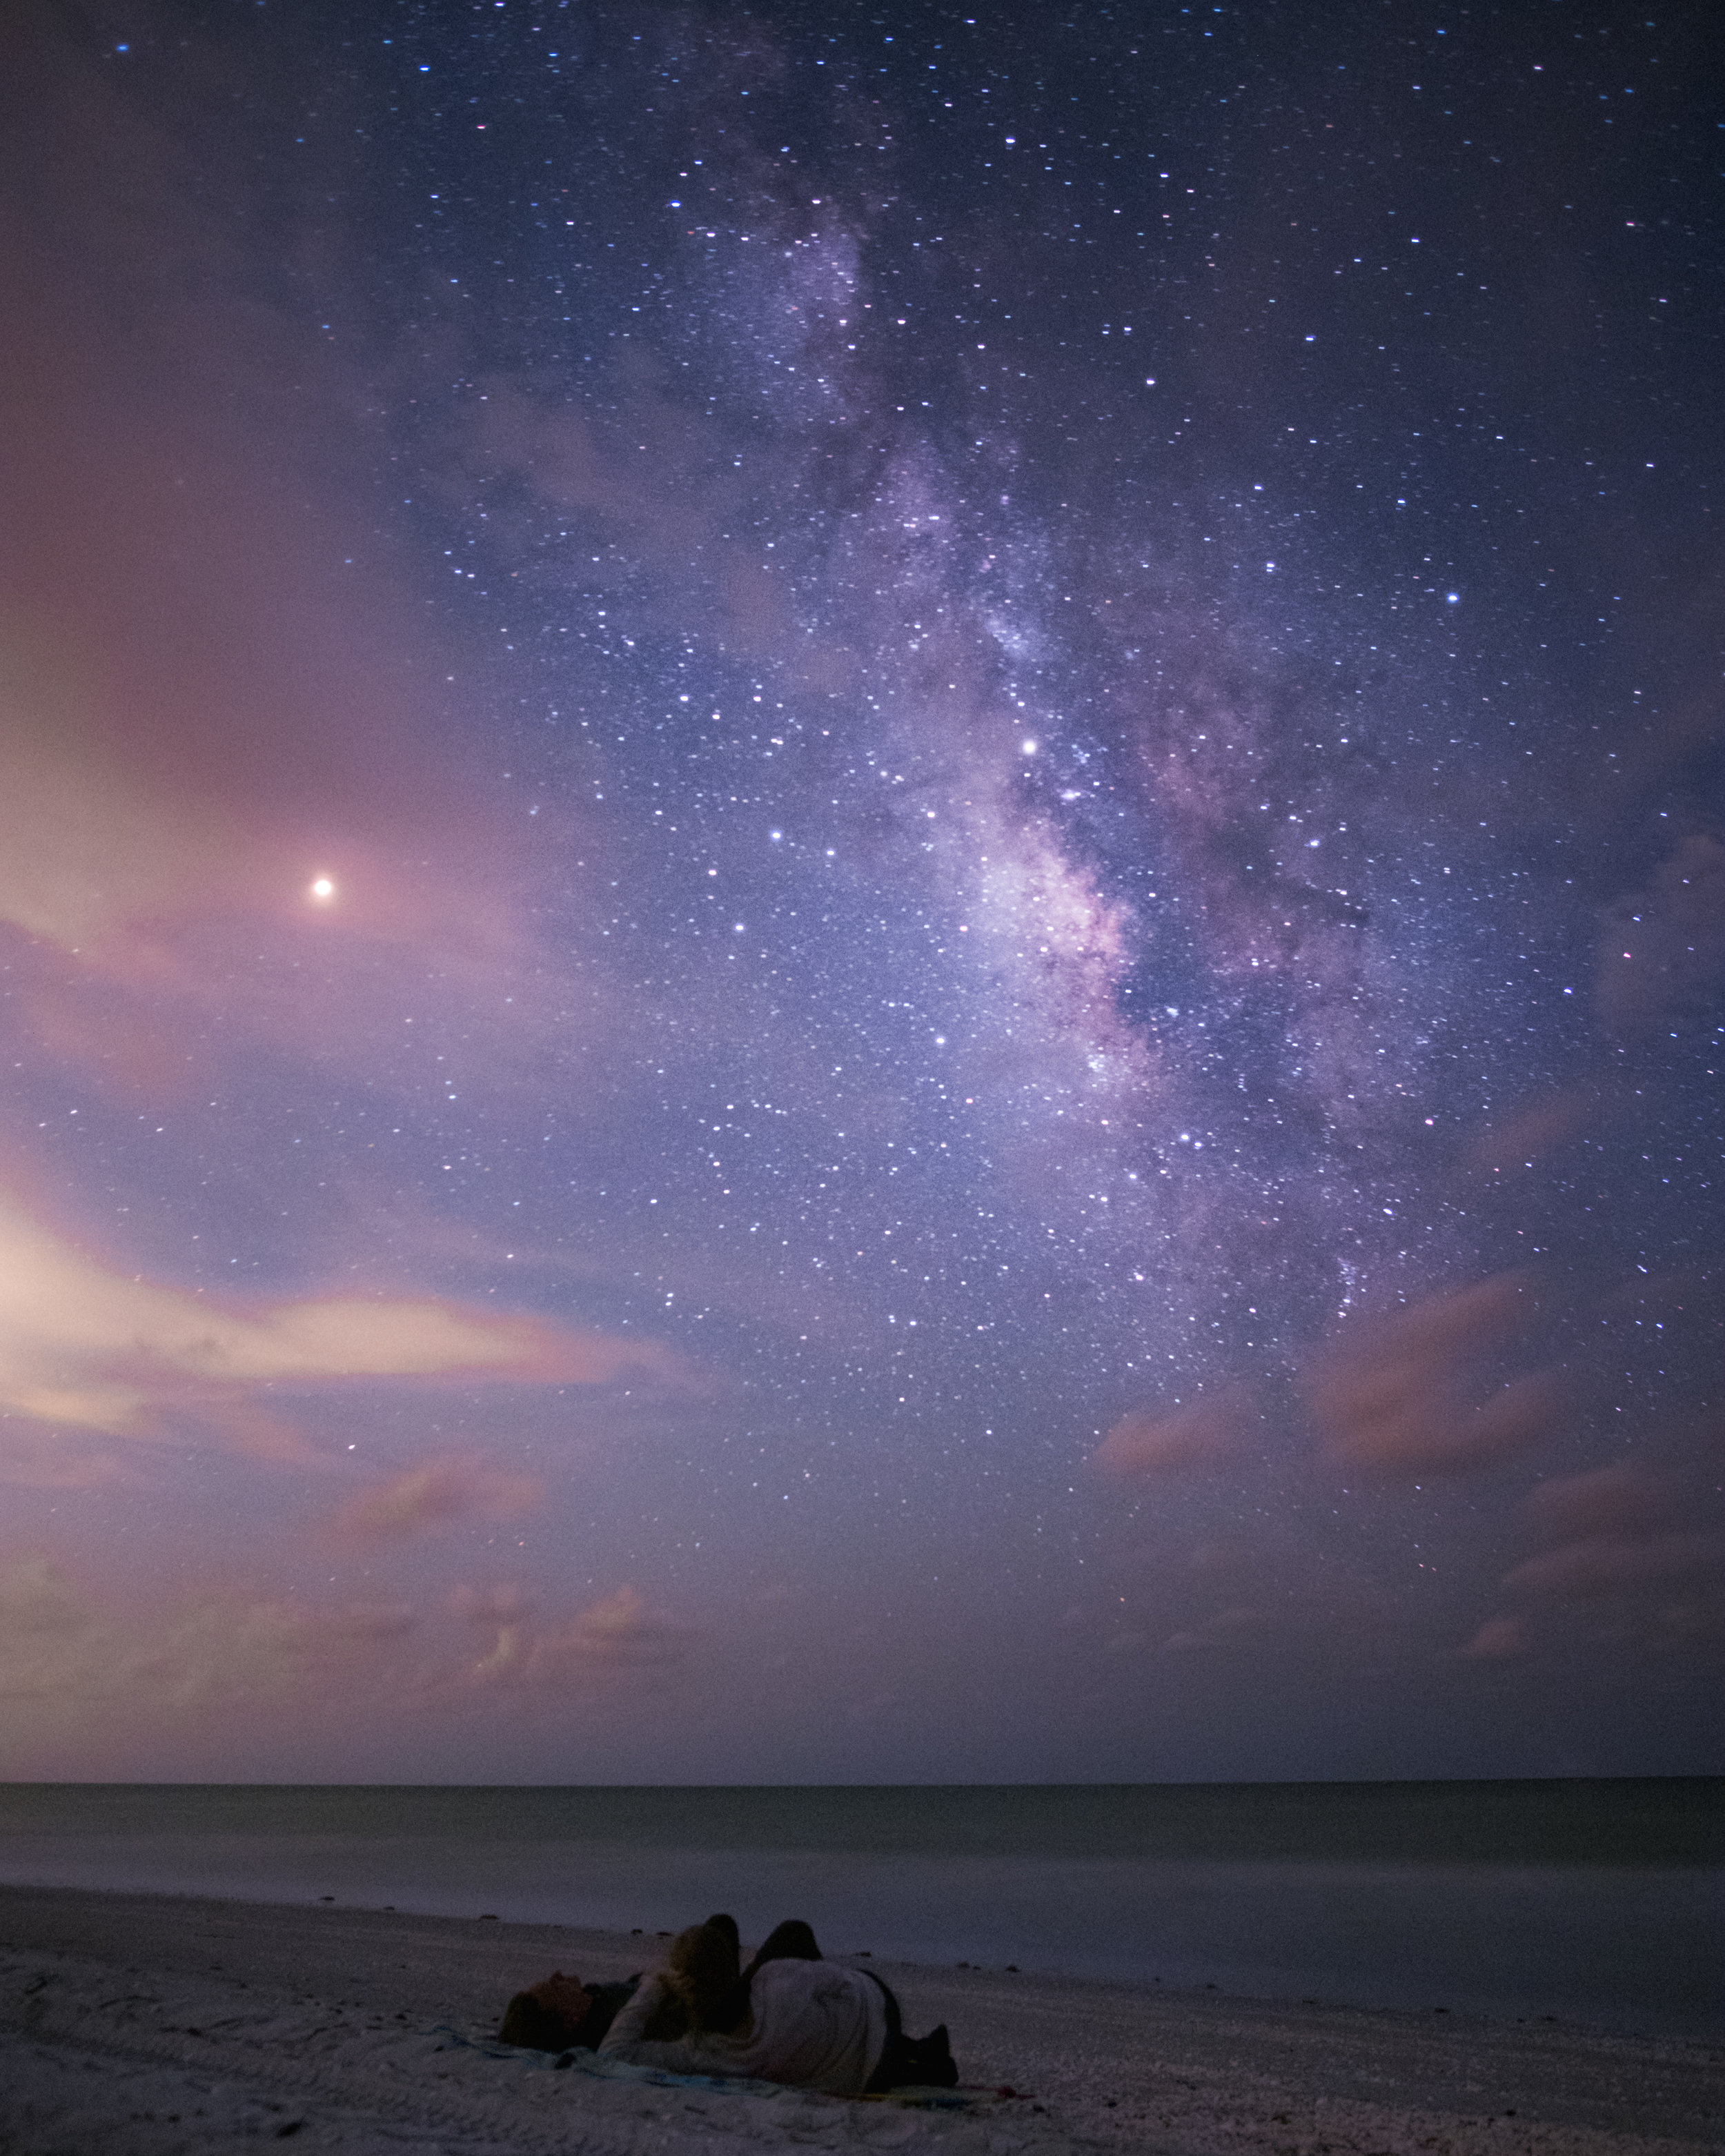 Catch a meteor shower at peak during the new moon and hope for clear skies!